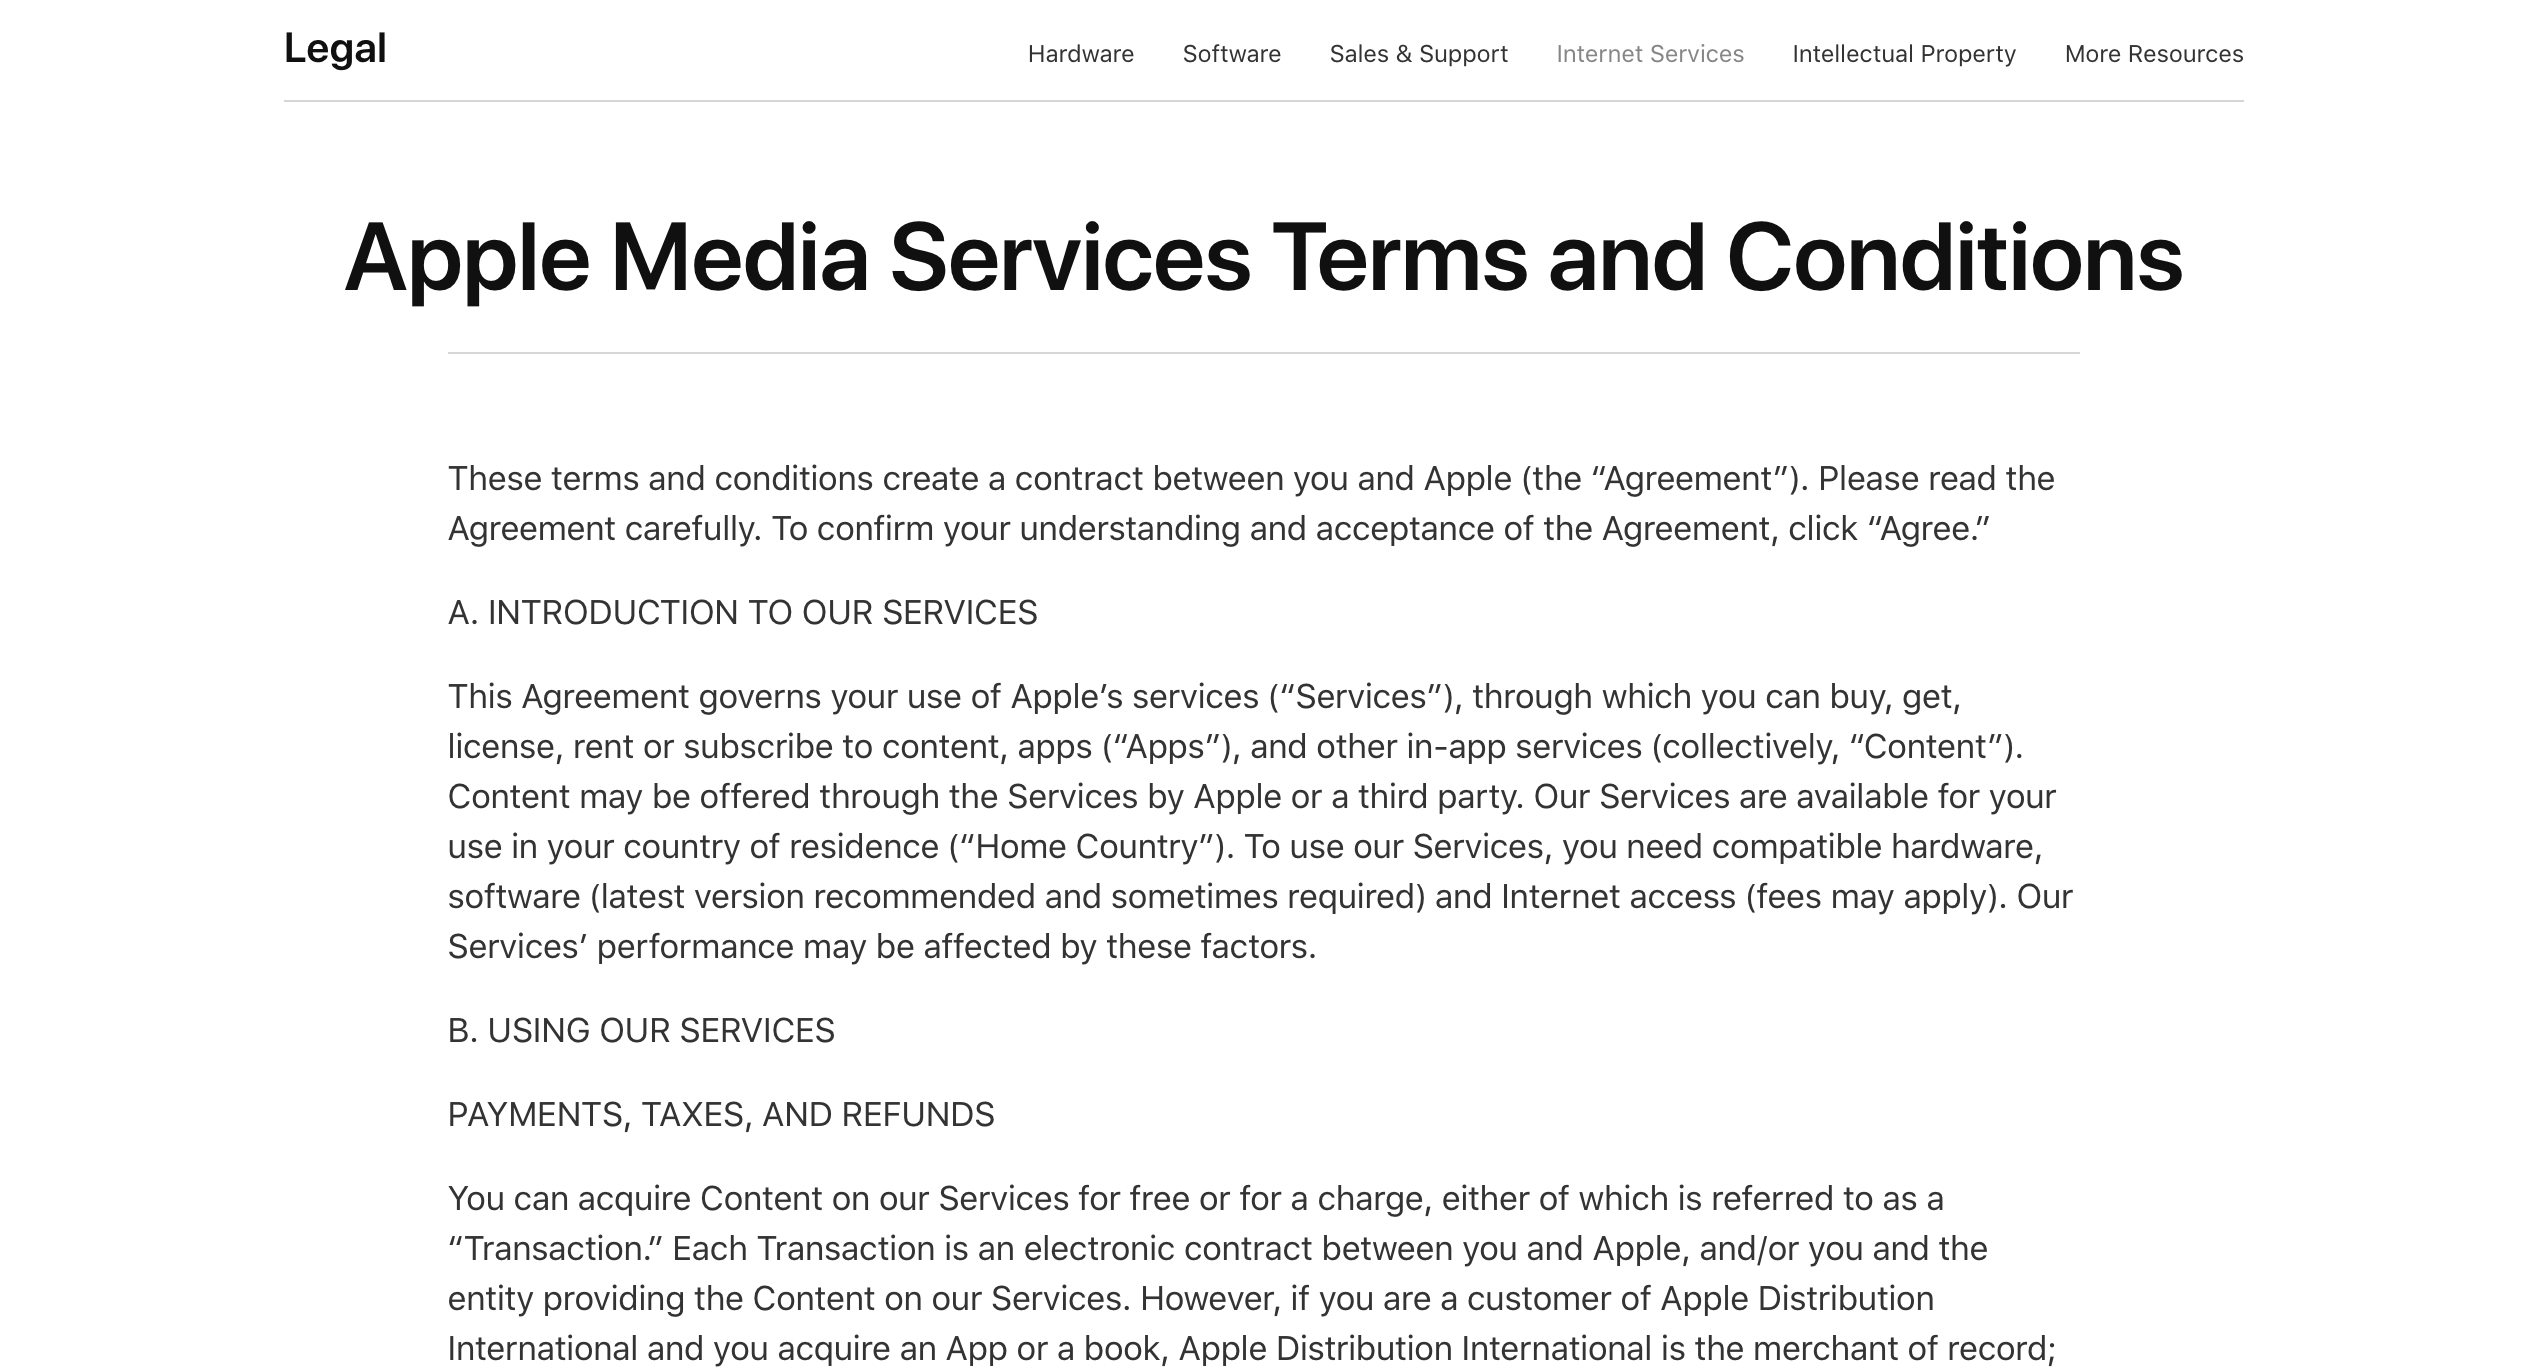 The Apple Media Services Terms and Conditions.